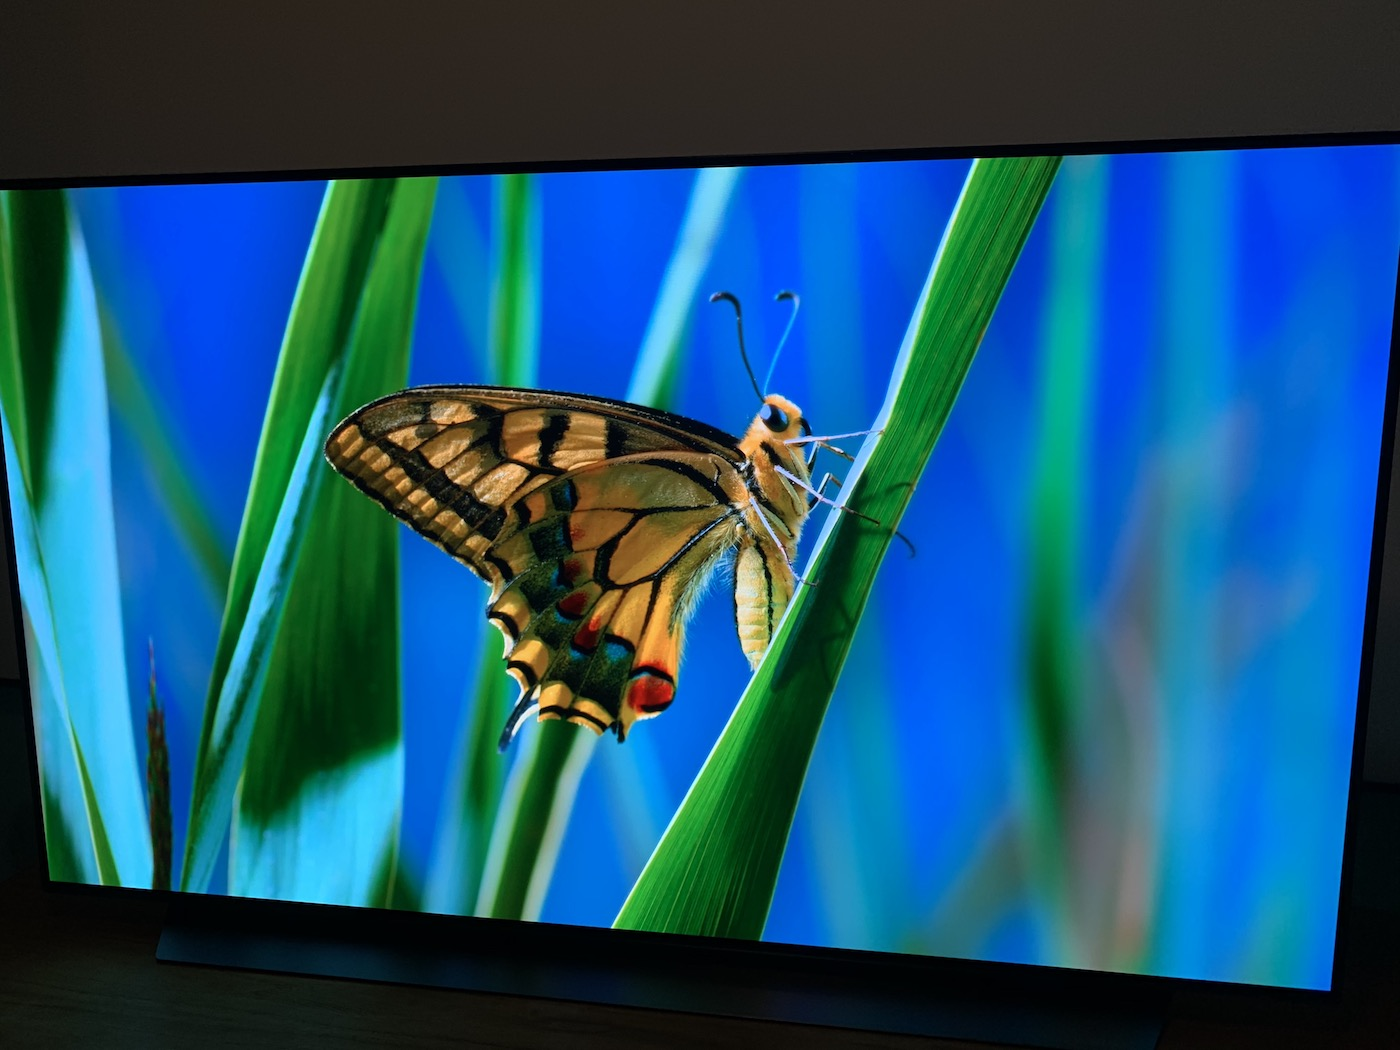 LG C9 OLED 4K TV - screen is showing a butterfly